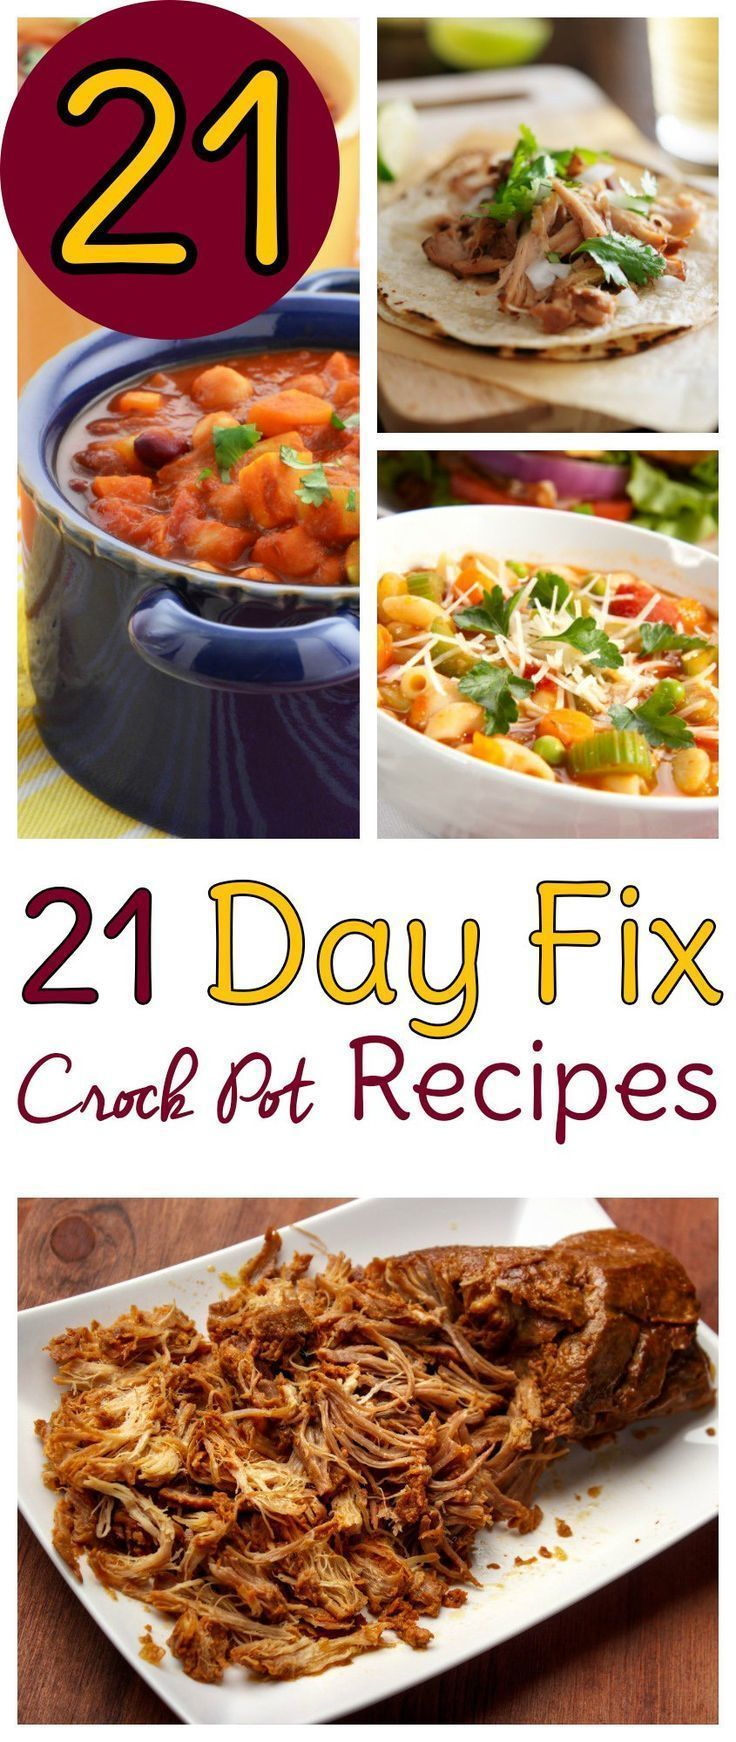 21 Day Fix Crockpot recipes Use these healthy Crockpot recipes for your beach b 21 Tage Fix Crockpot Rezepte Verwenden Sie diese gesunden CrockpotRezepte für Ihren S...